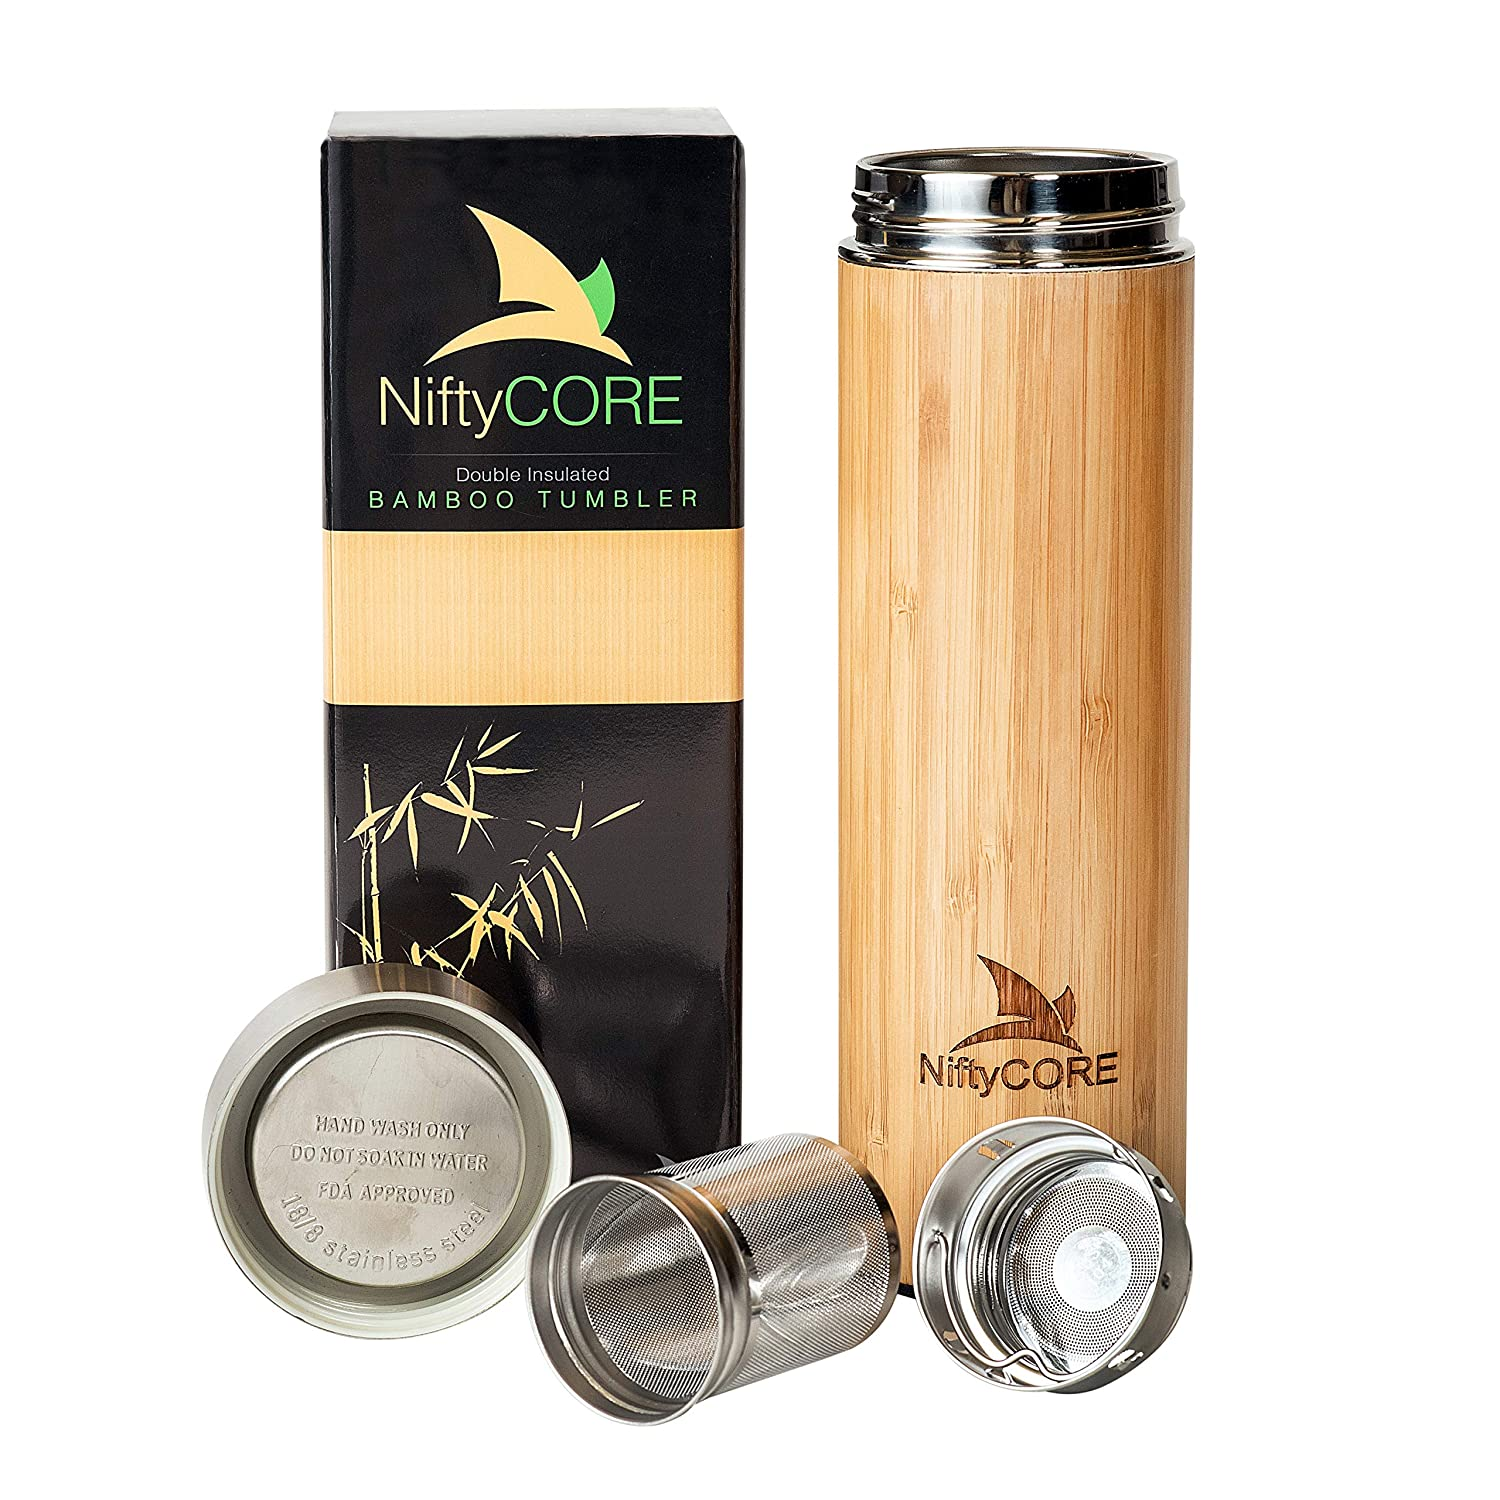 Bamboo Tumbler with Tea Infuser Loose Leaf Strainer – 17 oz Advanced Double Insulated Stainless Steel Travel Thermos - Best Gift for Tea Lovers - Leak-Proof Hot Coffee Mug, Fruit Water Bottle